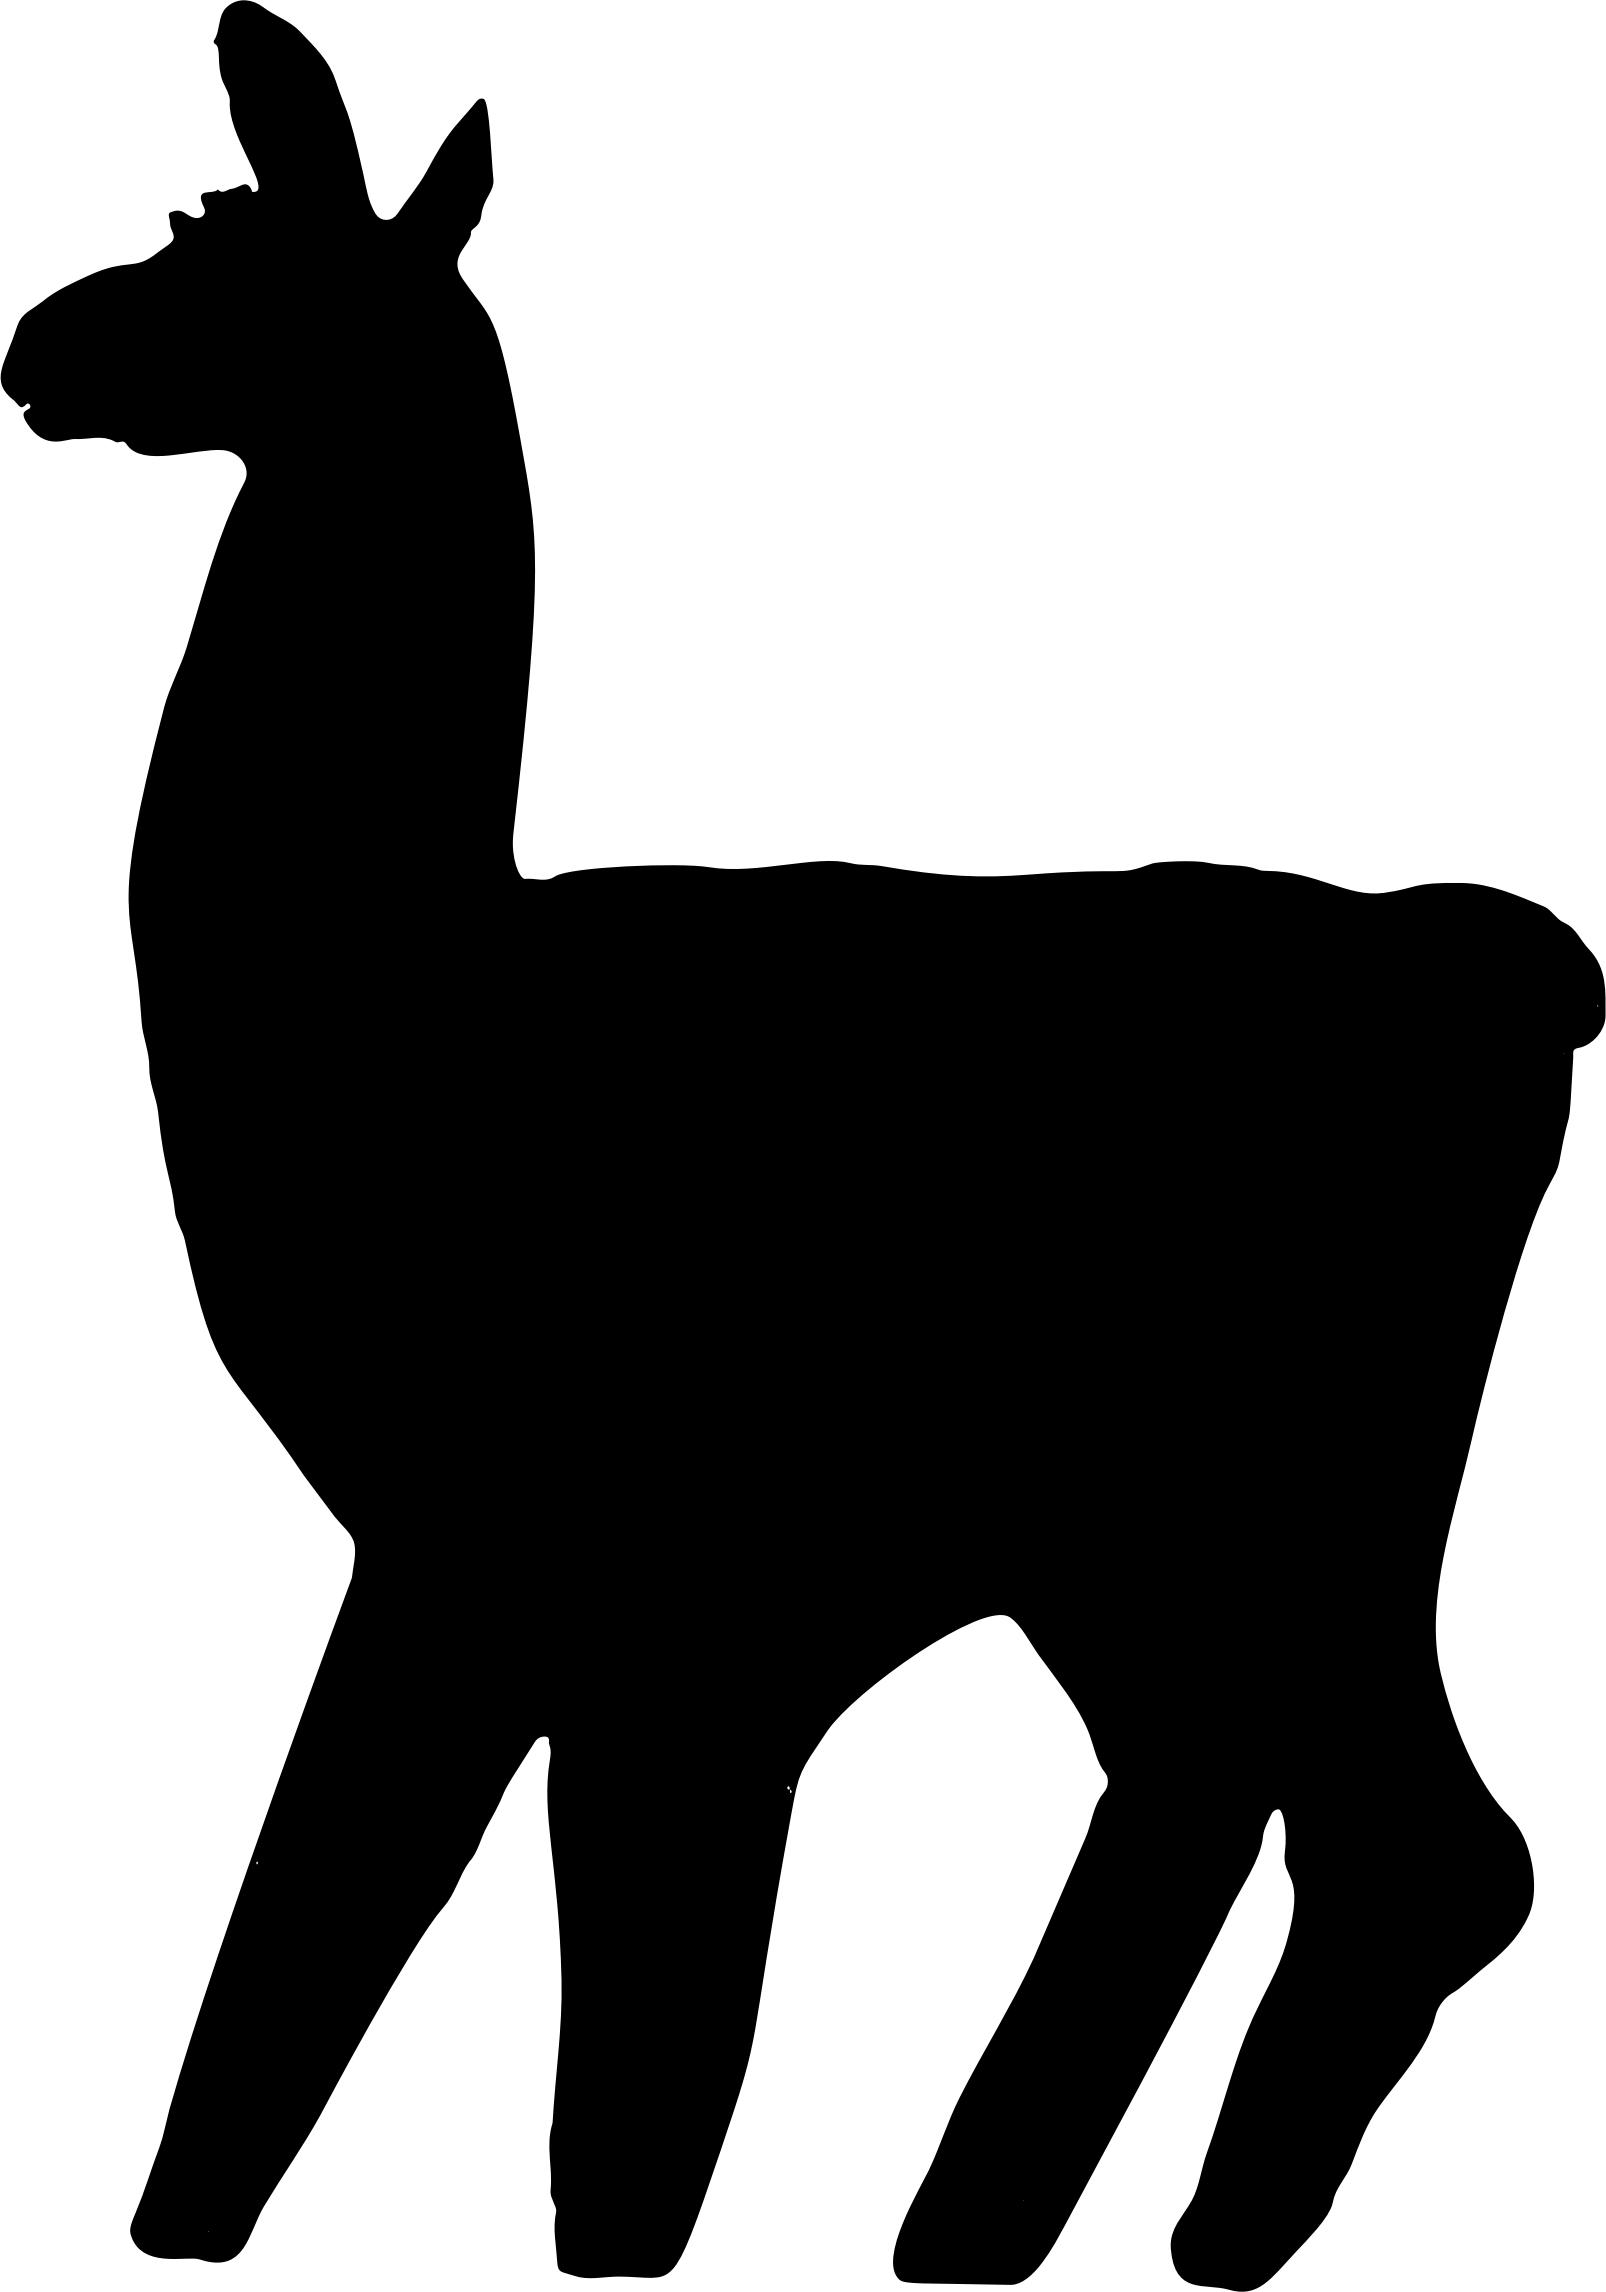 1606x2292 Llama Silhouette Icons Png